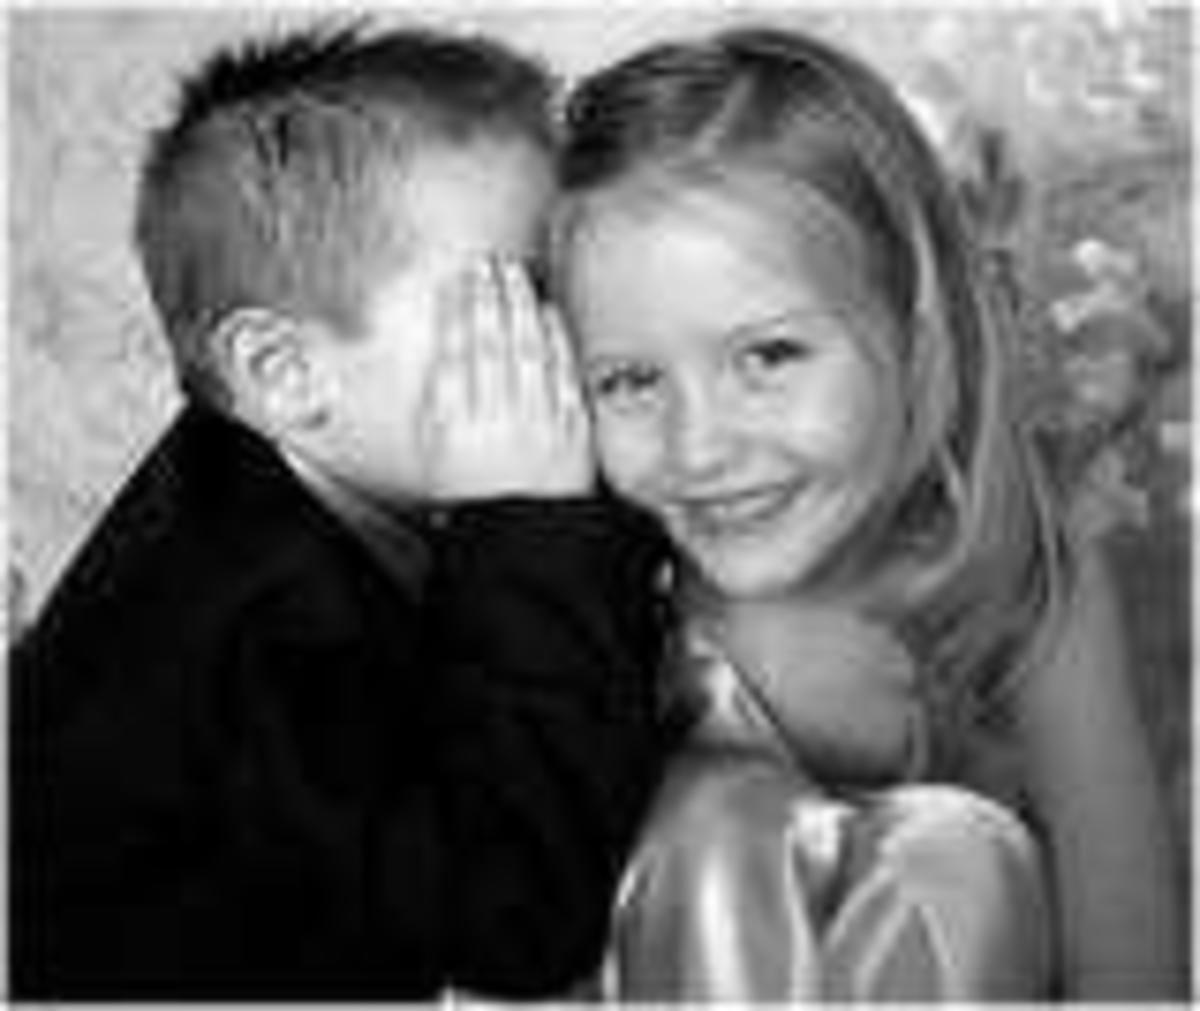 Happiness is best when shared - two children sharing a smile with the boy whispering into the blond little girls ear